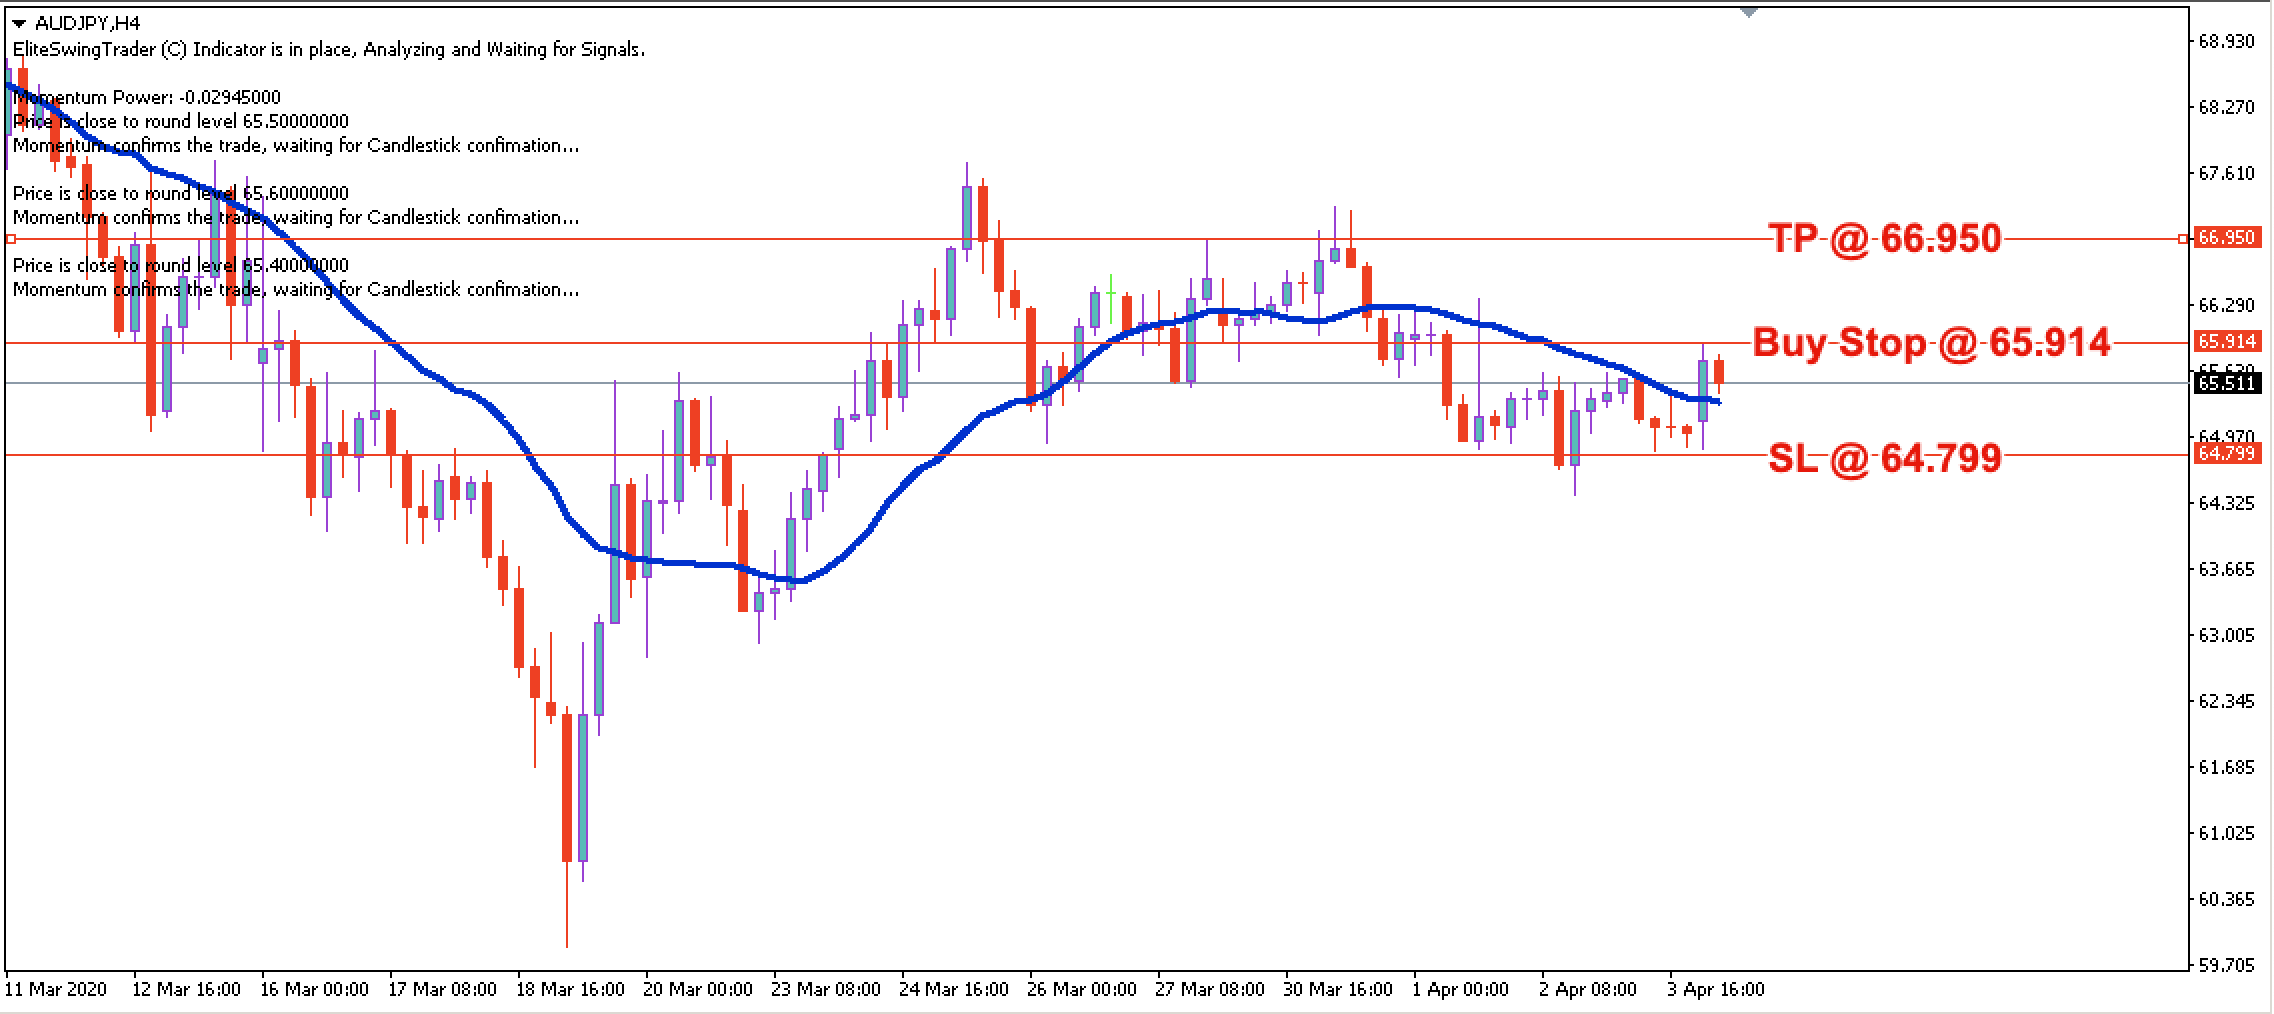 AUD/JPY Daily Price Forecast – 6th April 2020